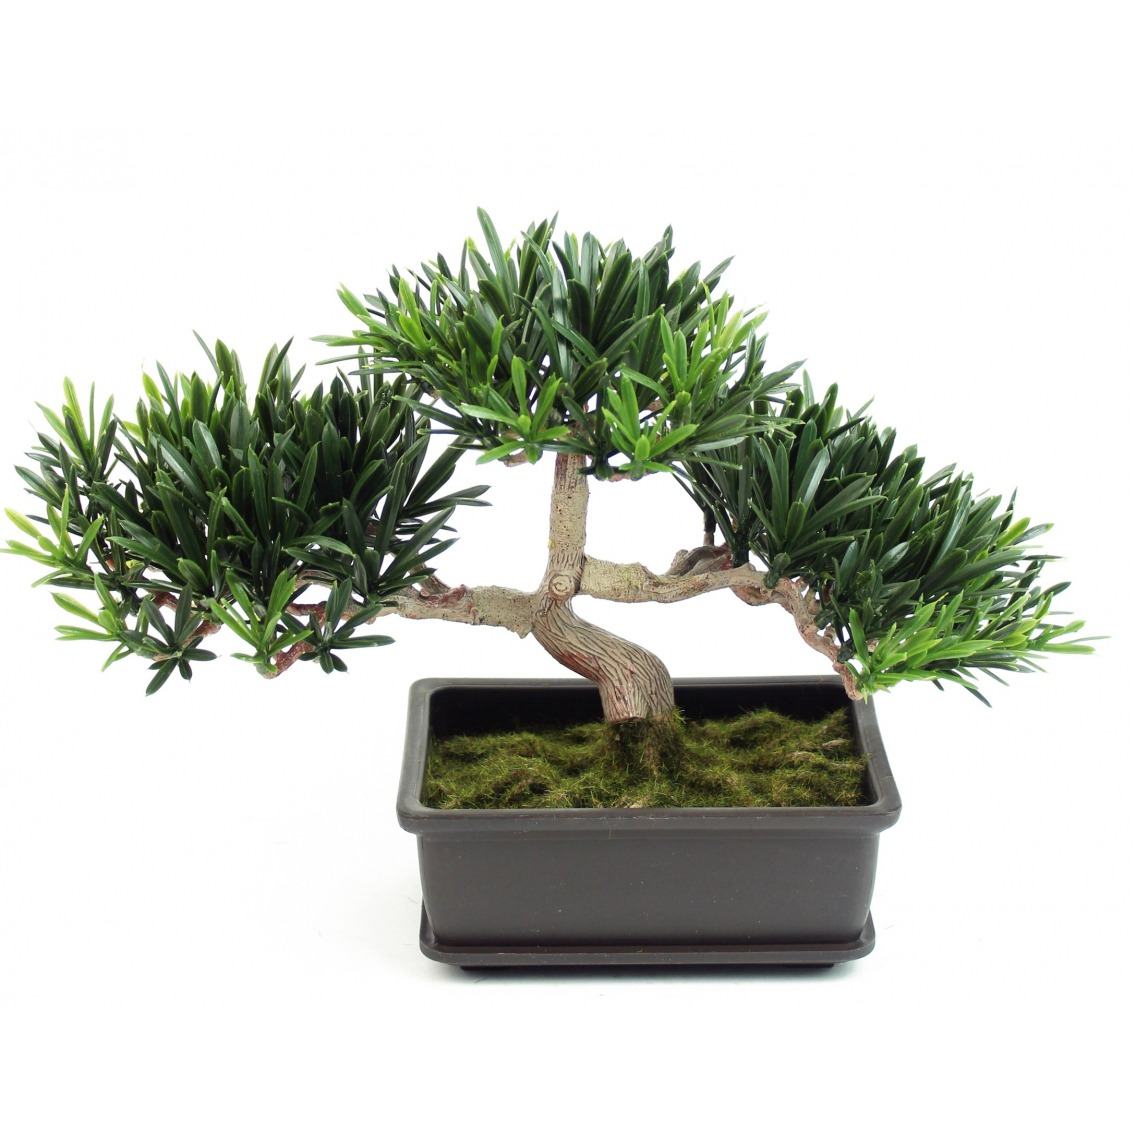 Bonsai podocarpus mini